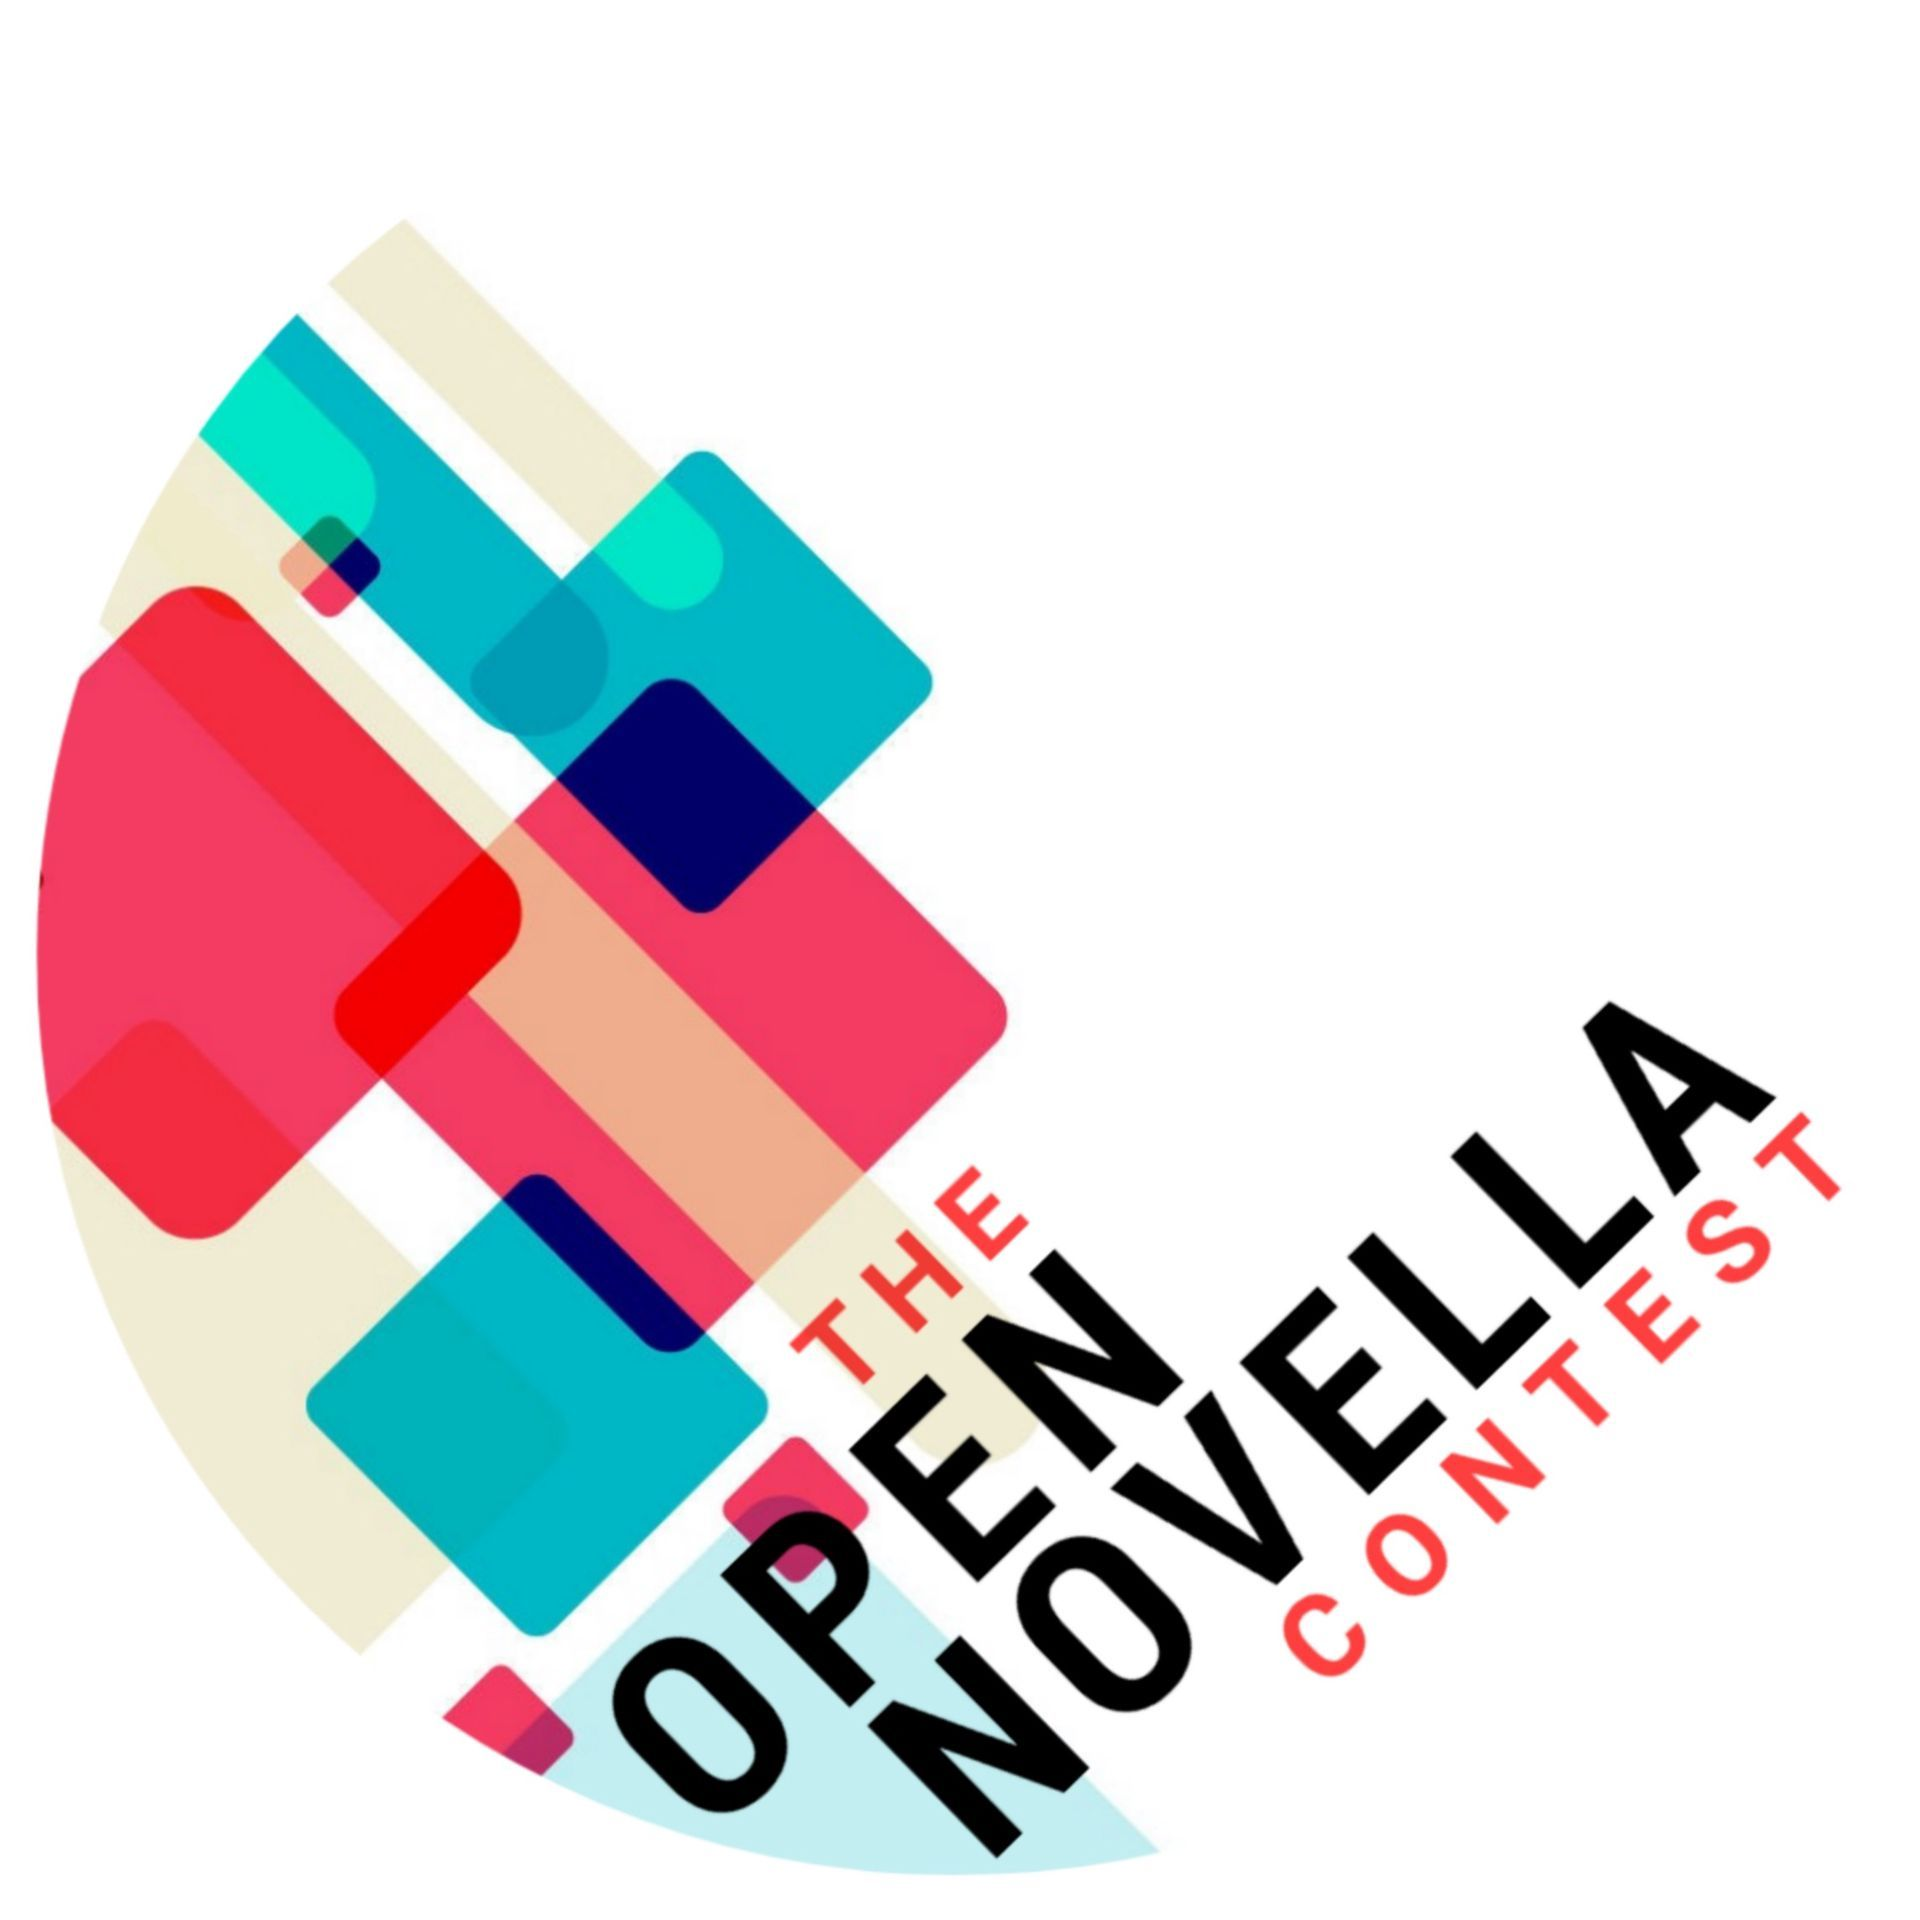 Lastly, make sure you follow the Open Novella Contest profile page for regular updates and important calendar dates, and add this book to your library so that you get notifications as and when they happen!